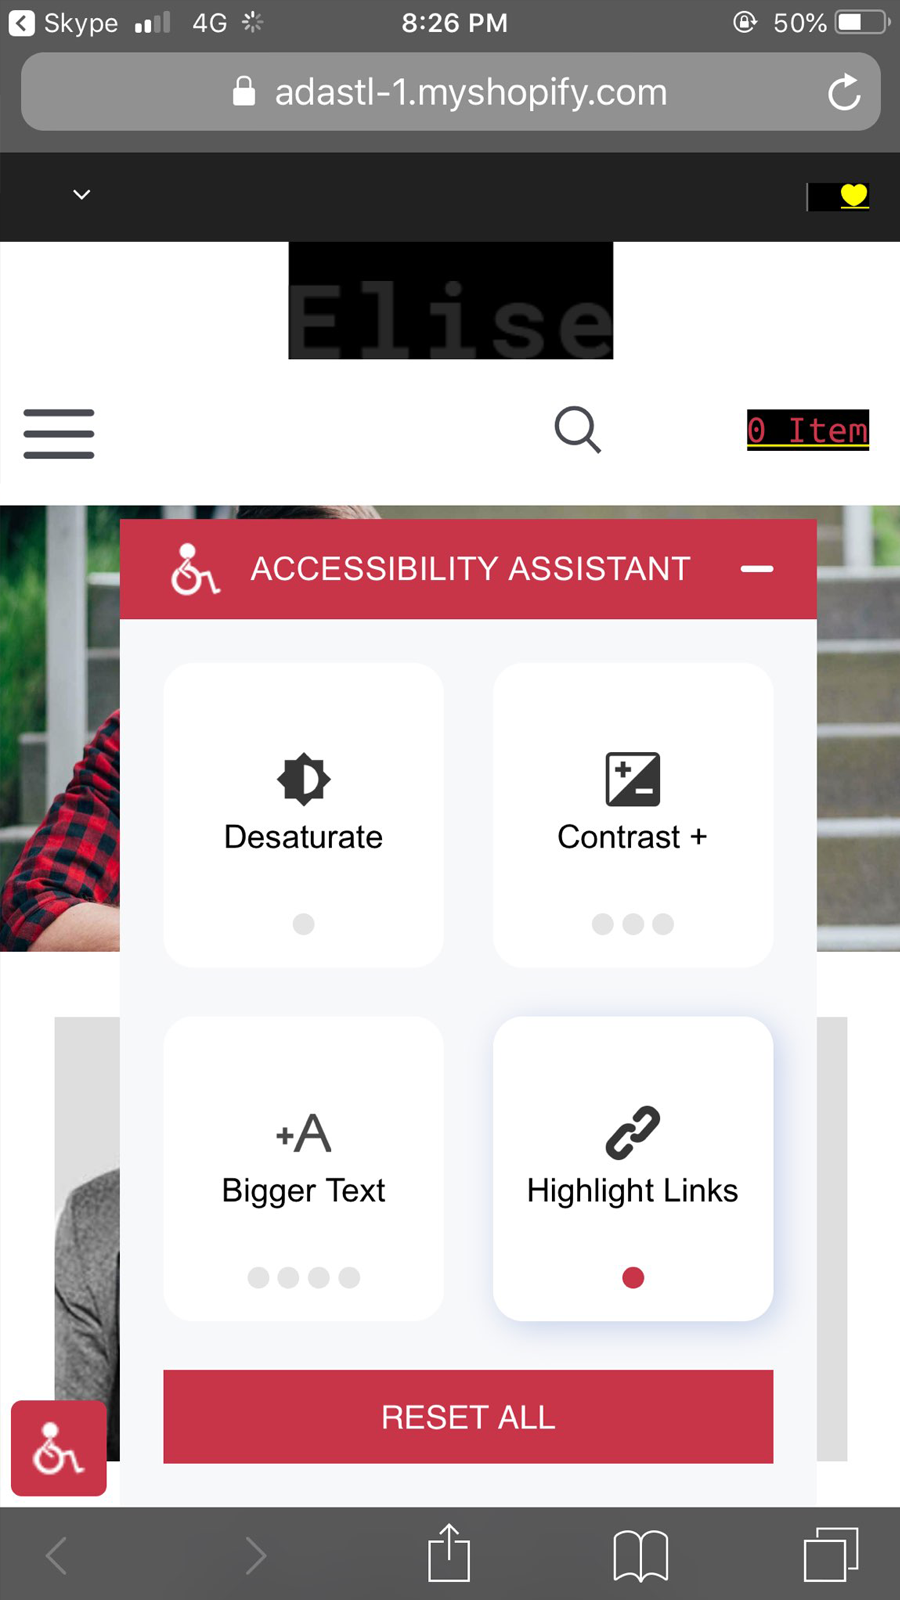 Accessibility Assist Highlight Links